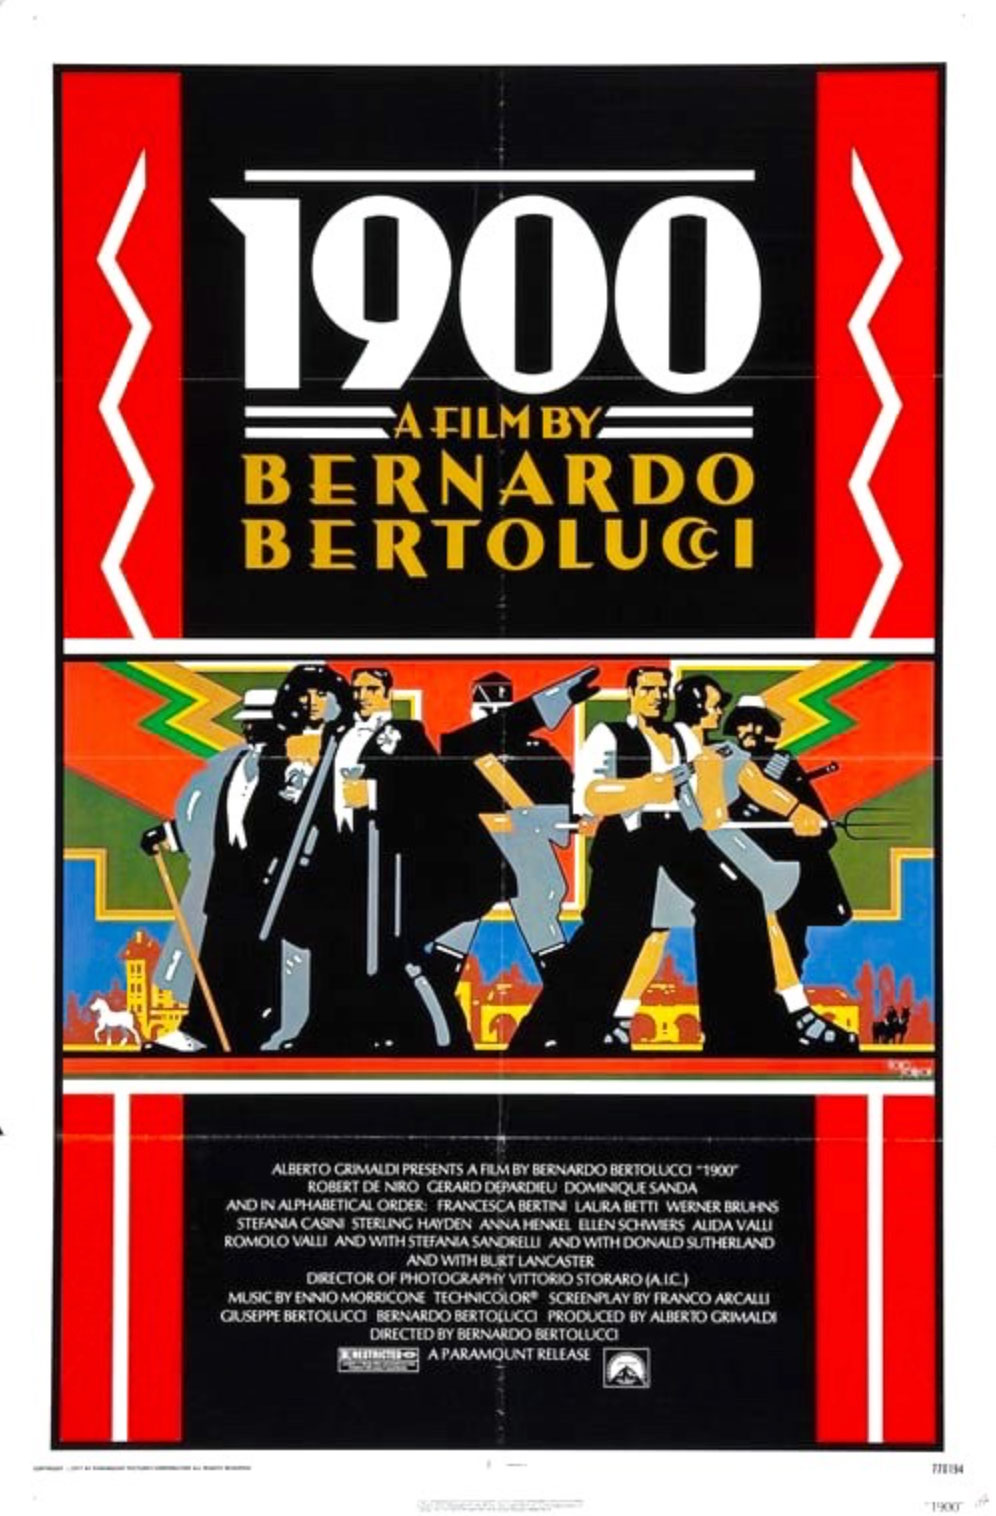 DVD-Cover (UK): 1900 (1976)